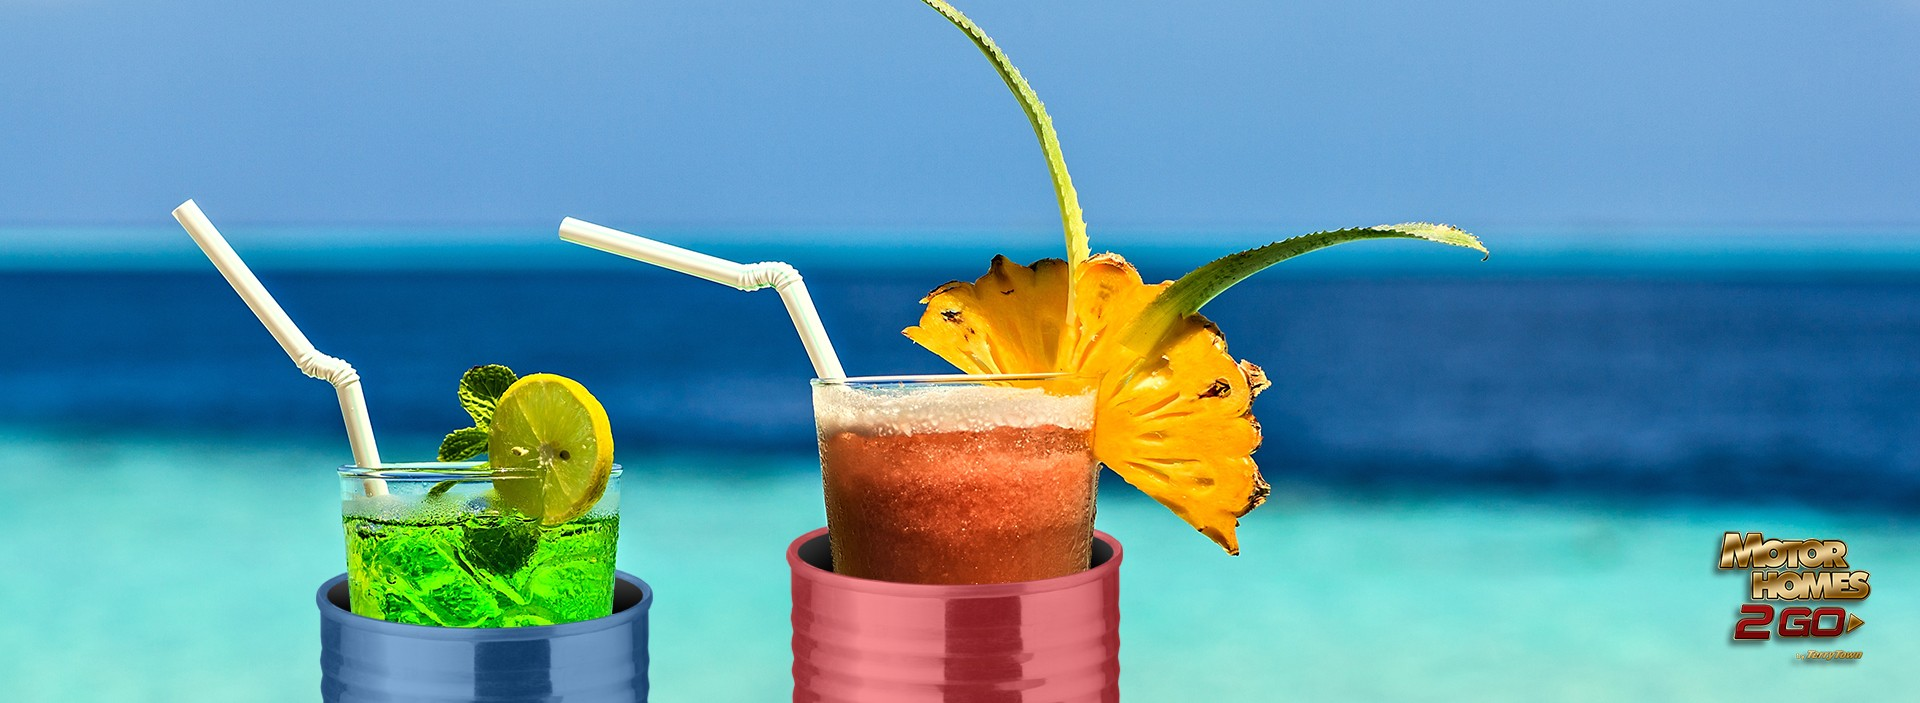 Make your Own Outdoor Drink Holder